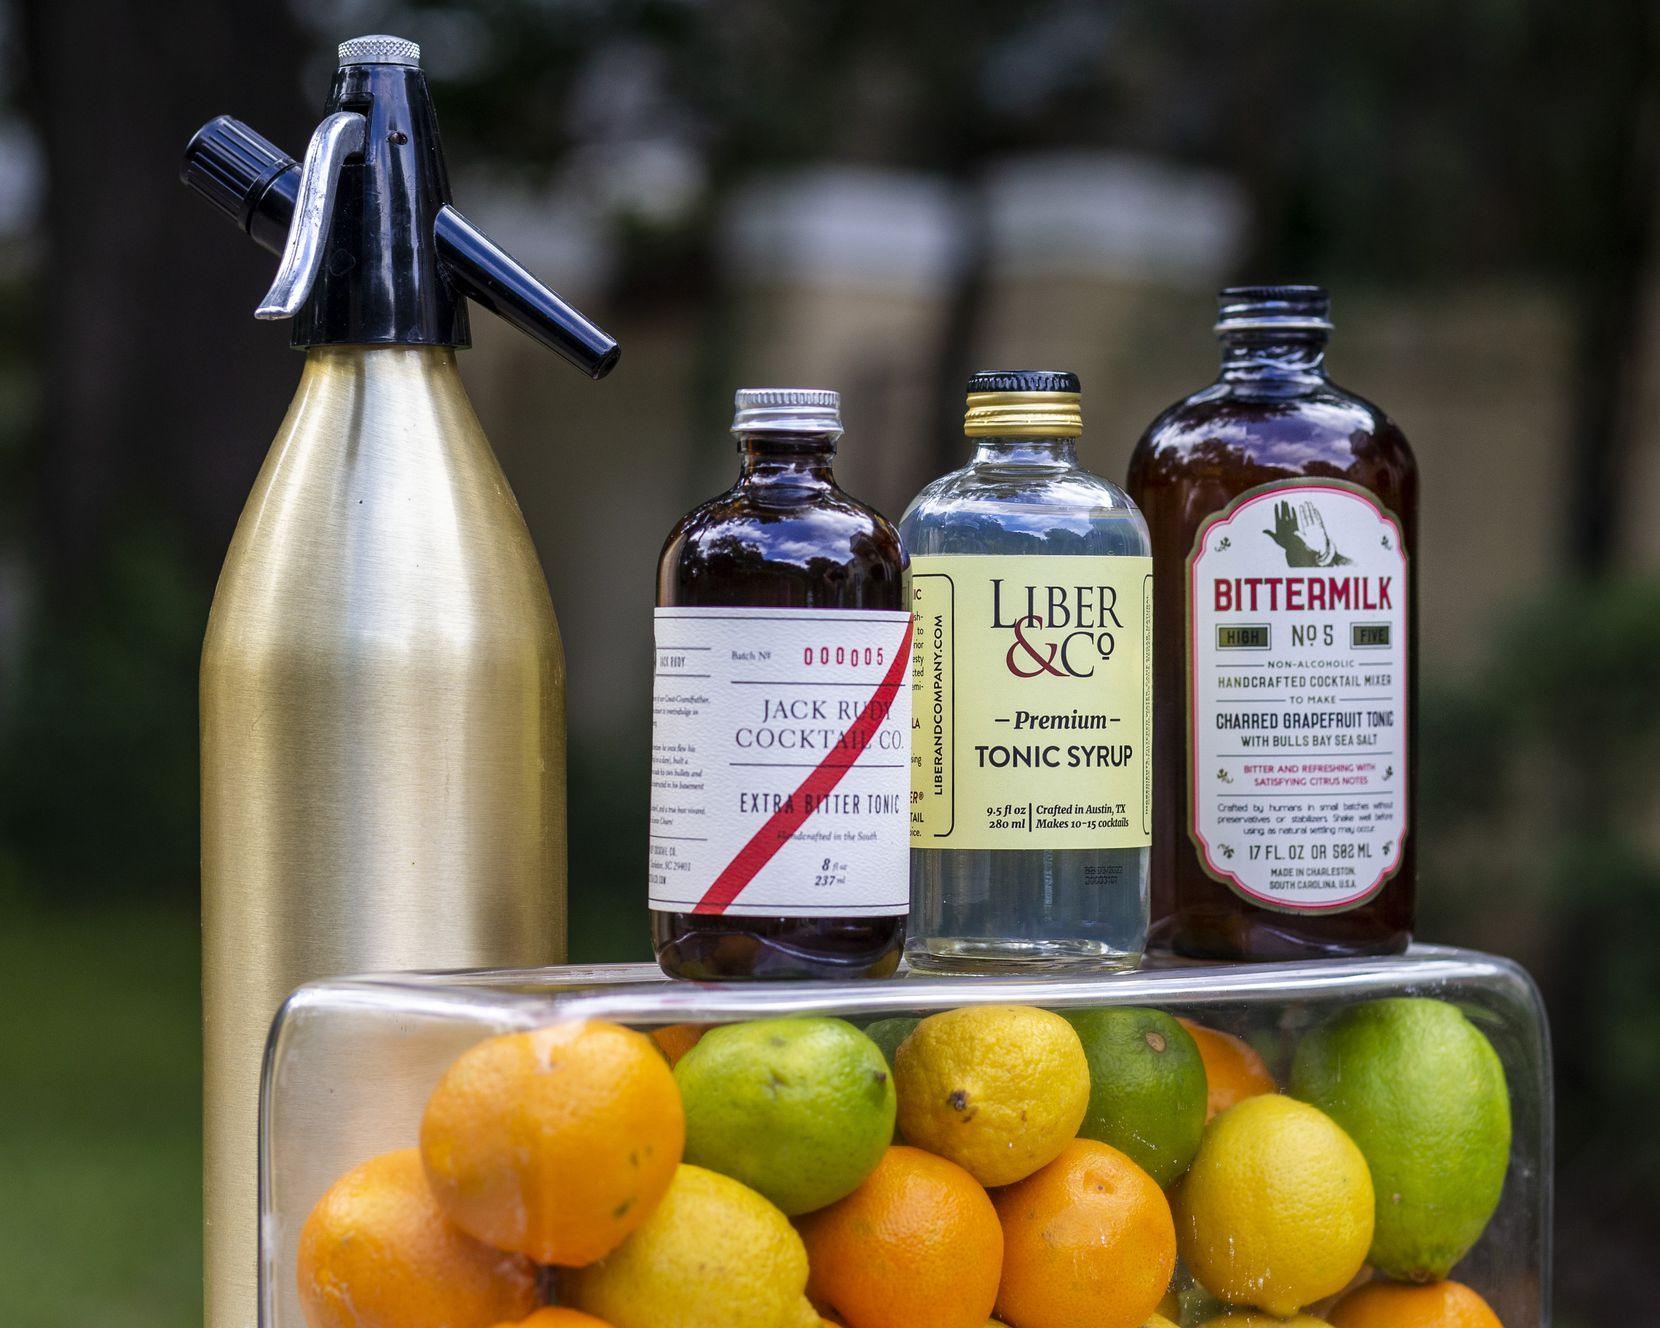 Tonic syrups by Jack Rudy, Liber & Co, and Bittermilk